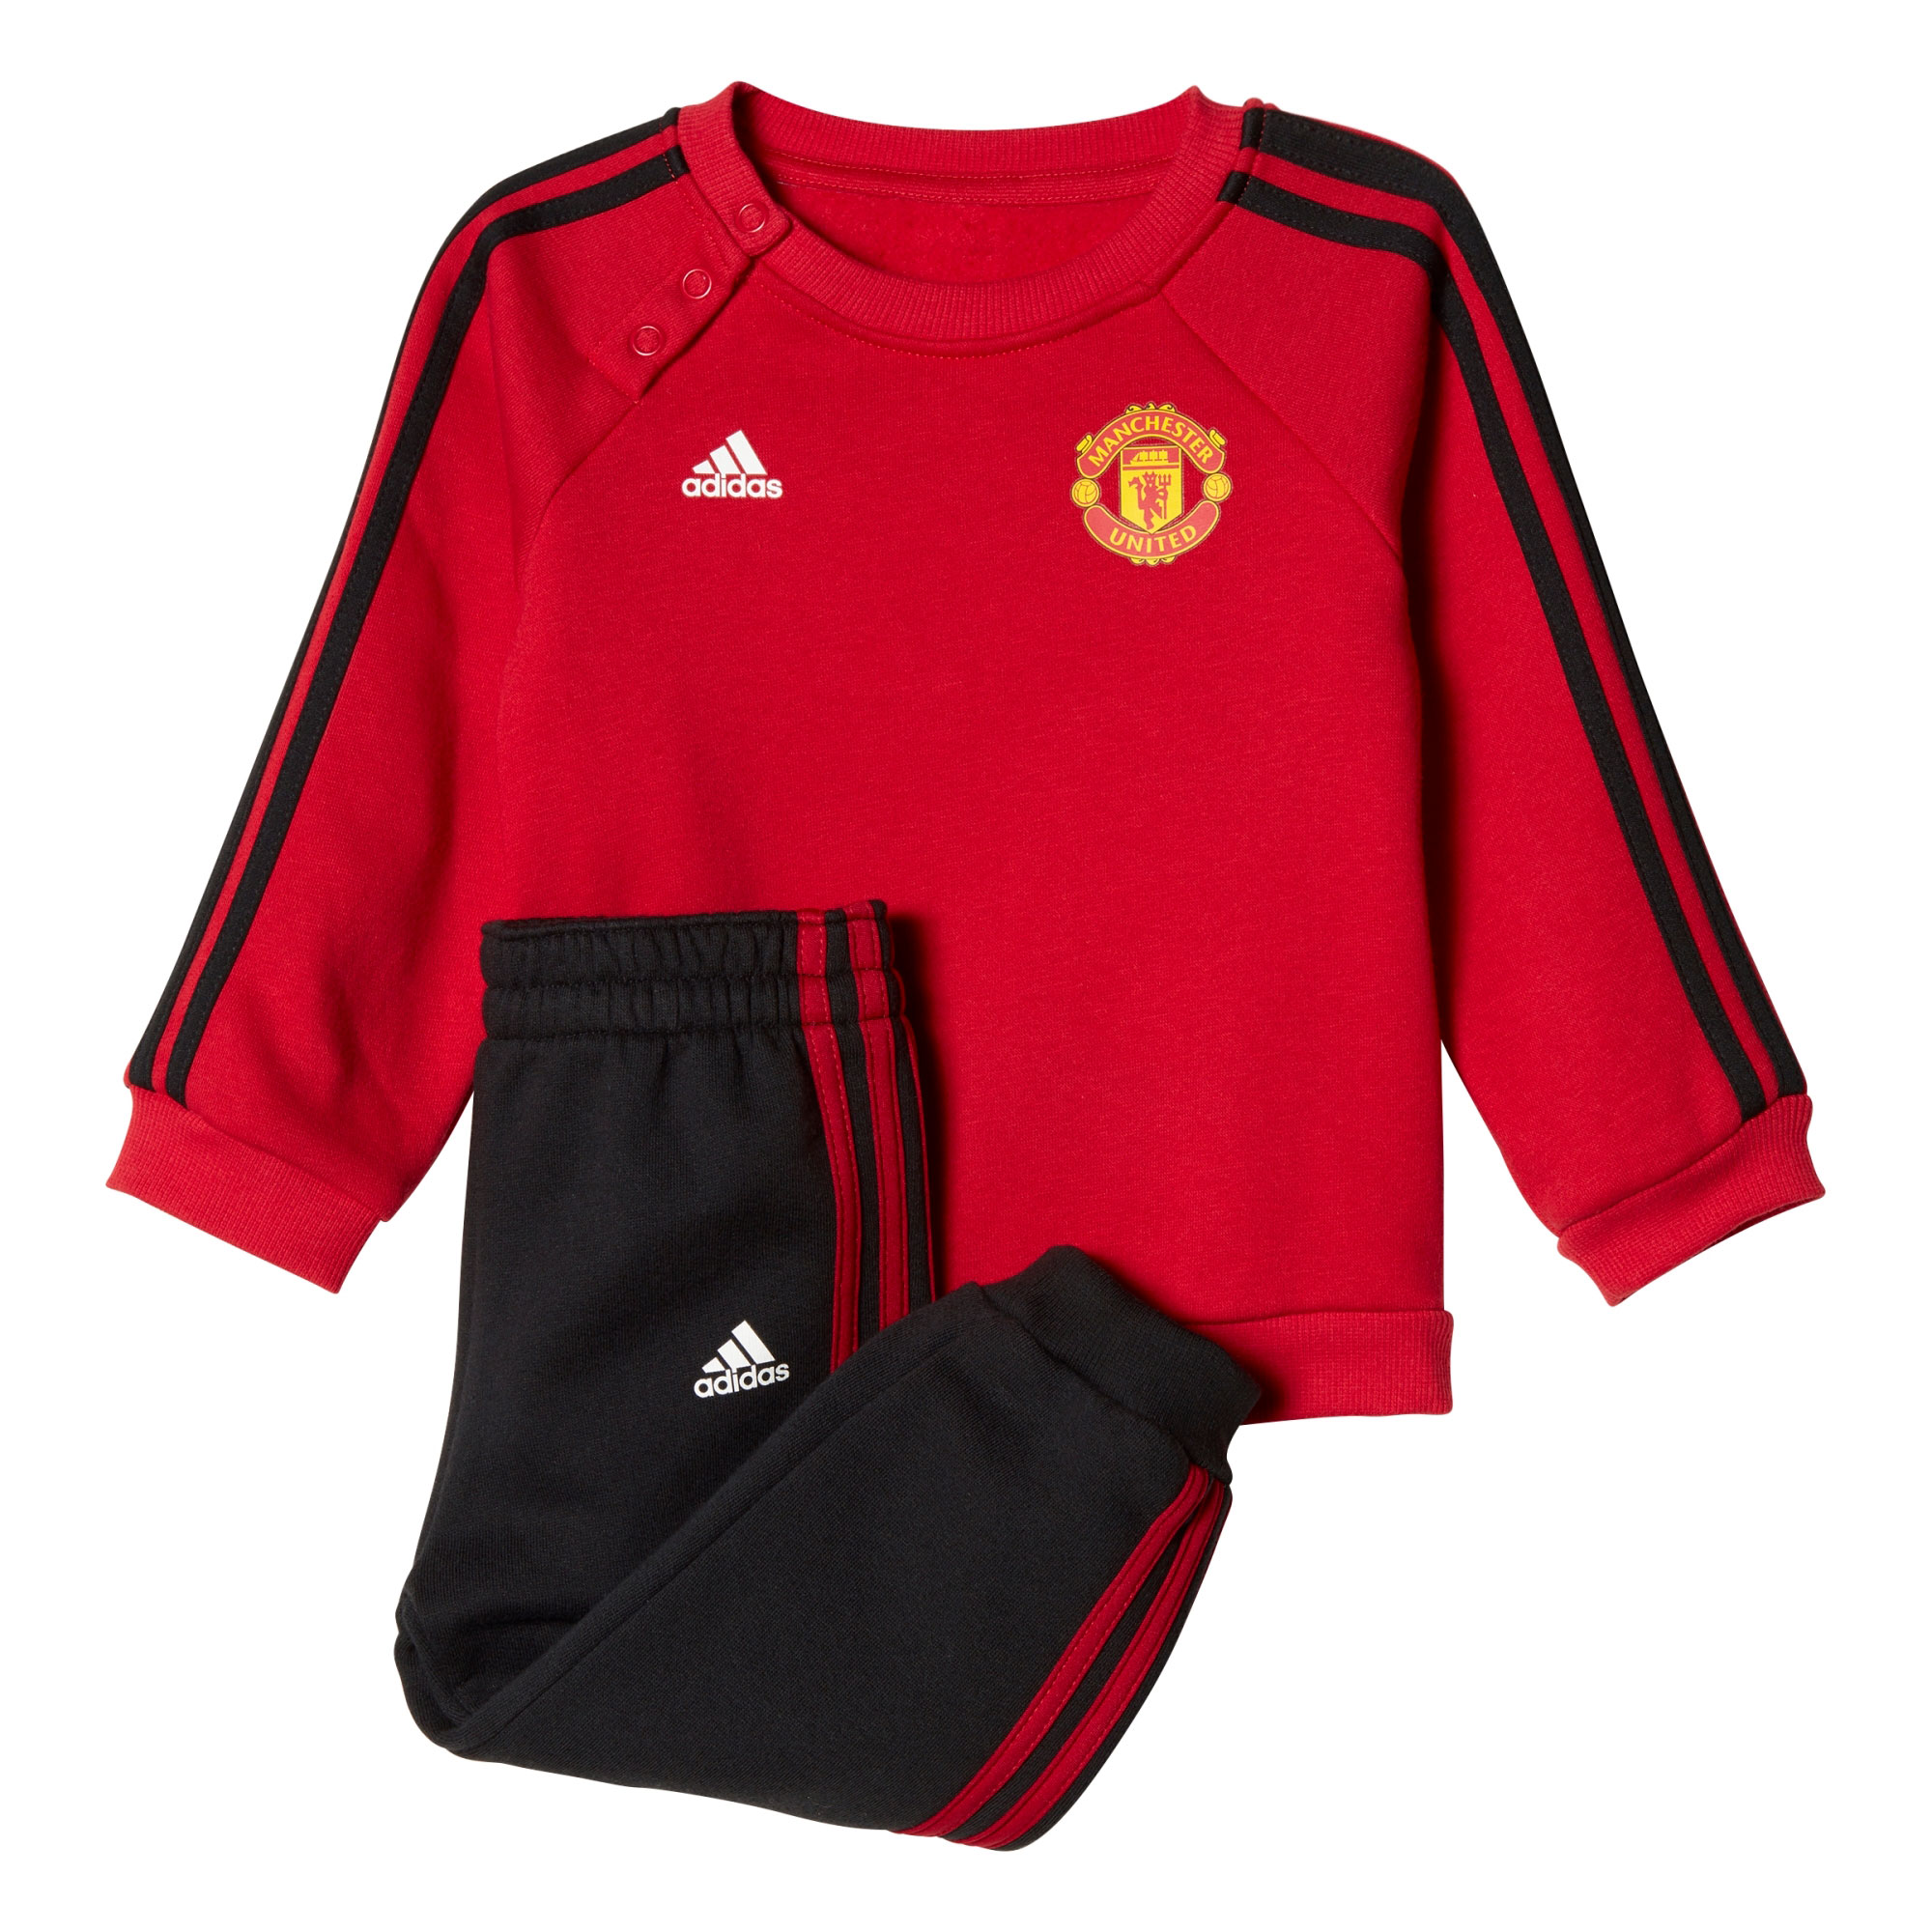 Manchester United 3 Stripe Baby Jog Suit - Red - Black